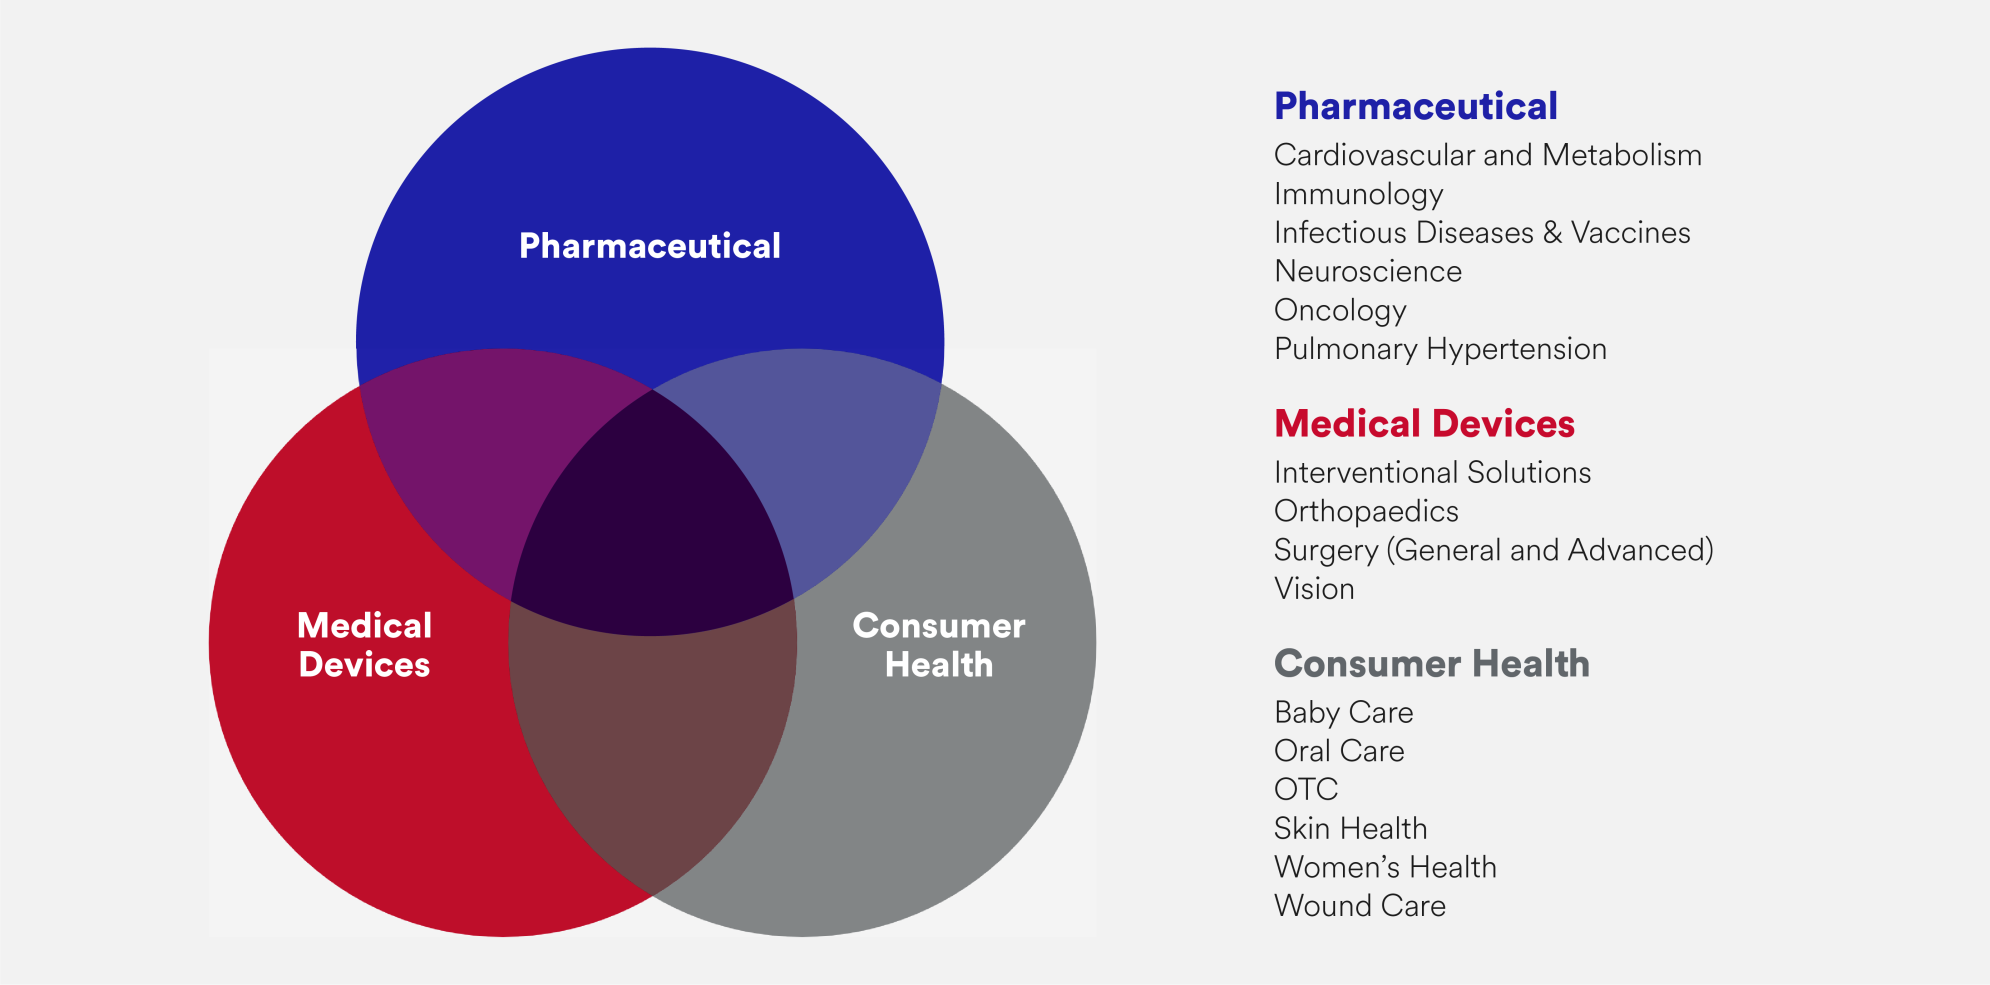 At Johnson & Johnson, we focus on the total health journey